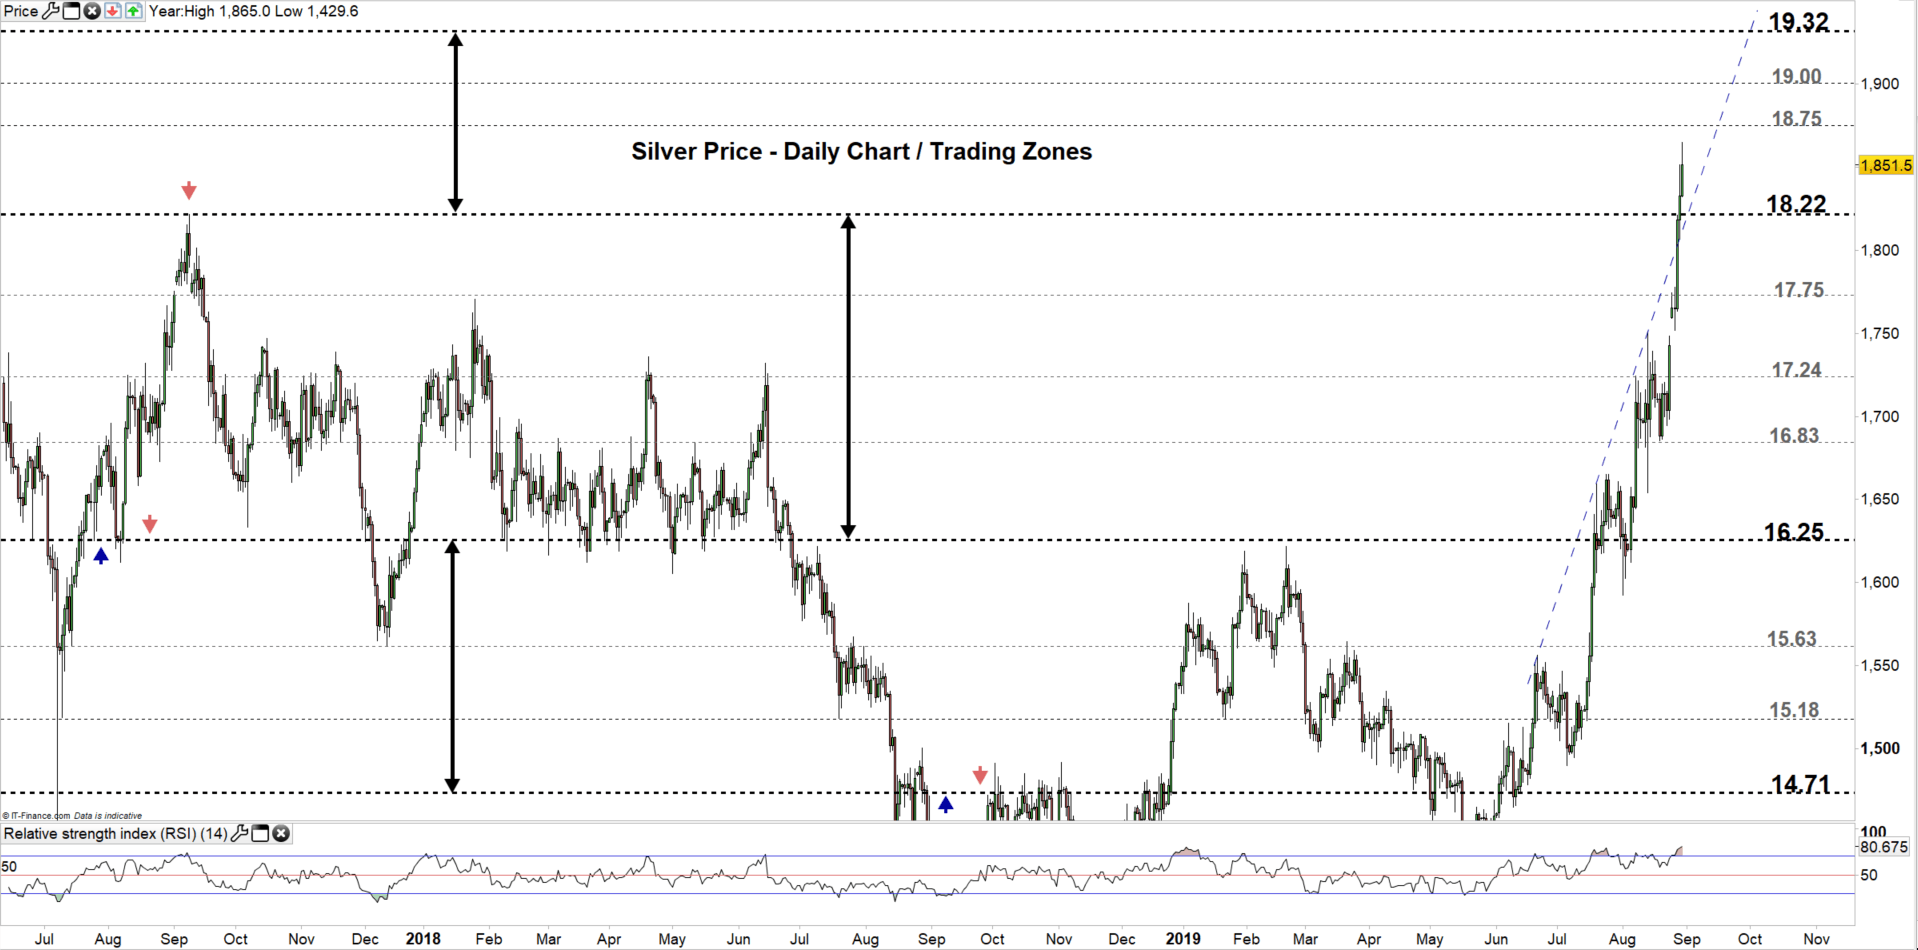 Silver Price Forecast Chart Signals